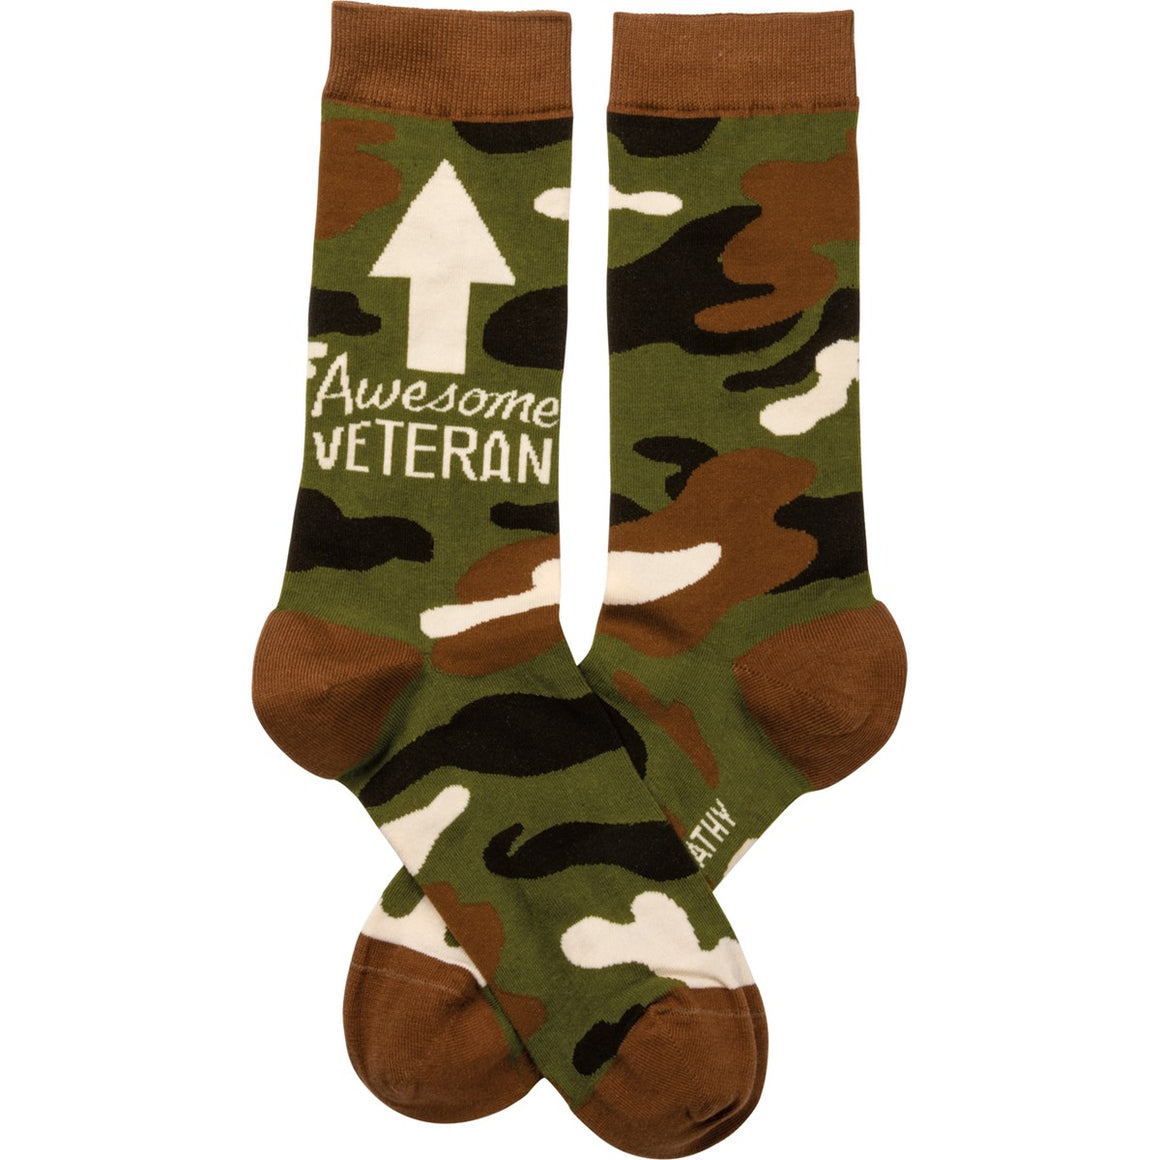 Awesome Veteran Socks